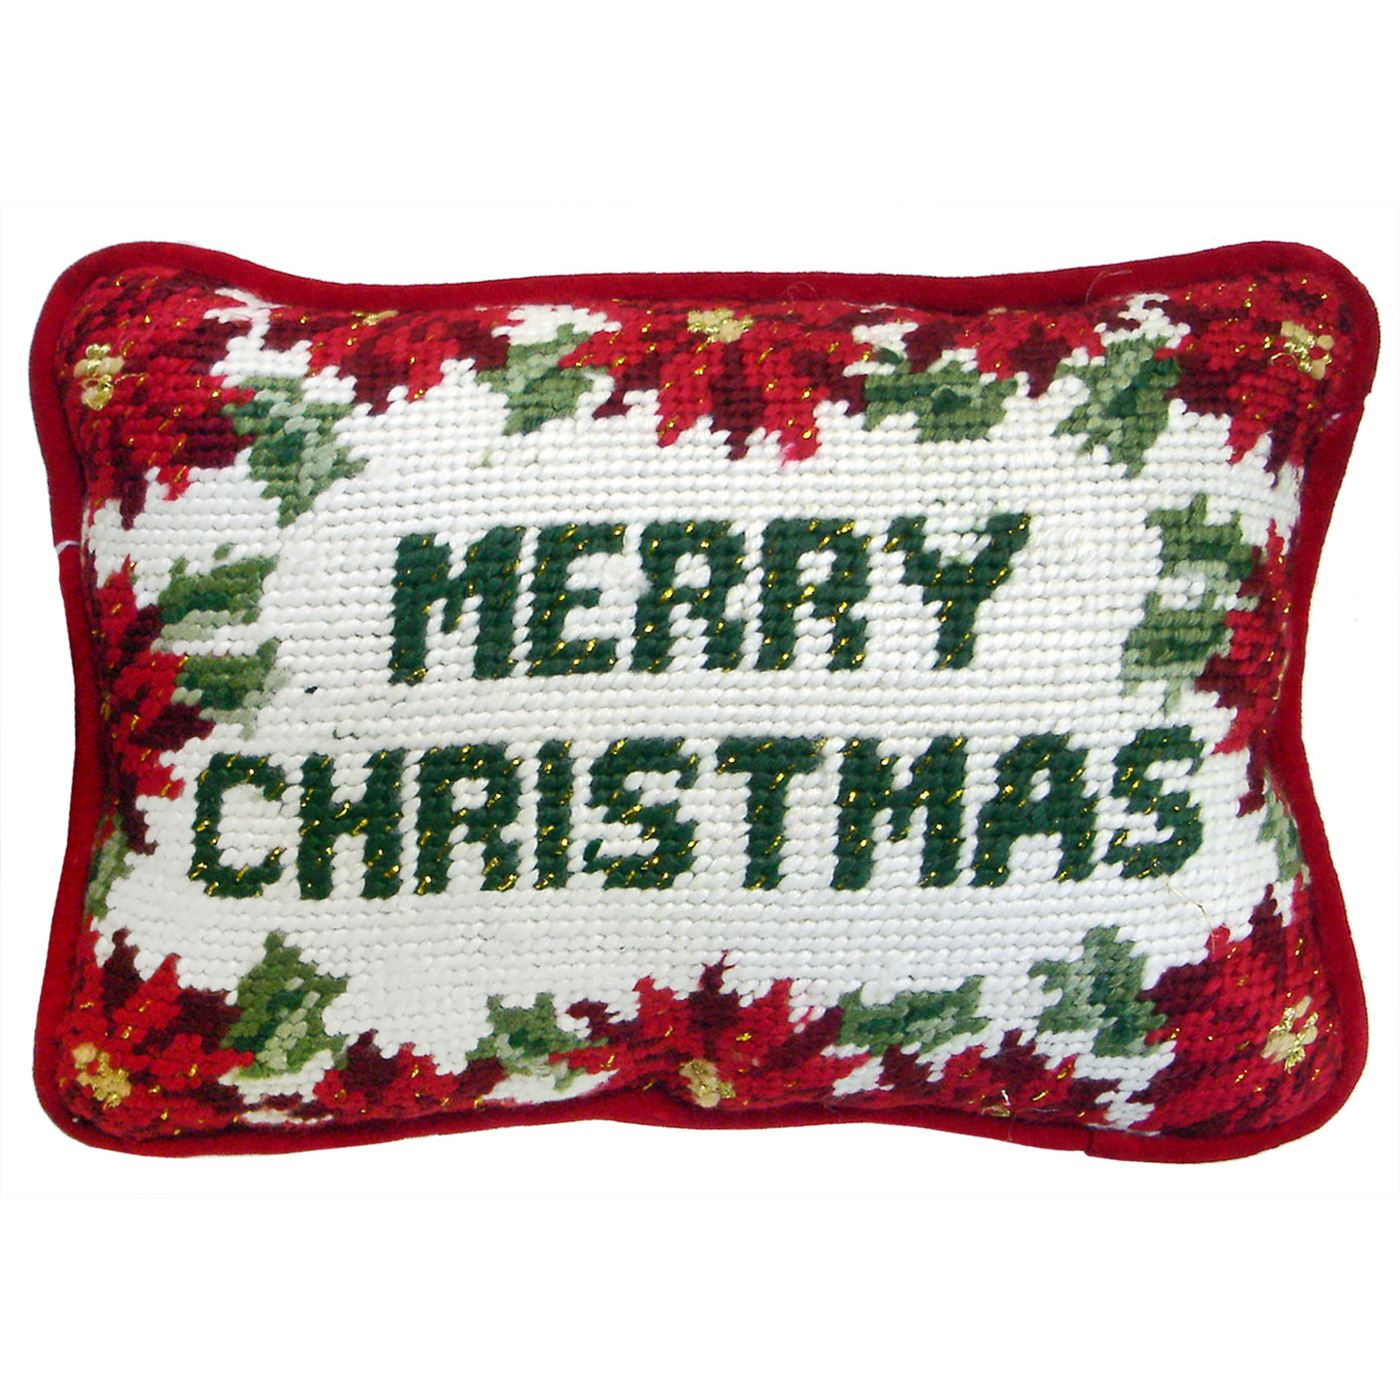 Merry Christmas Needlepoint Pillow - Traditions